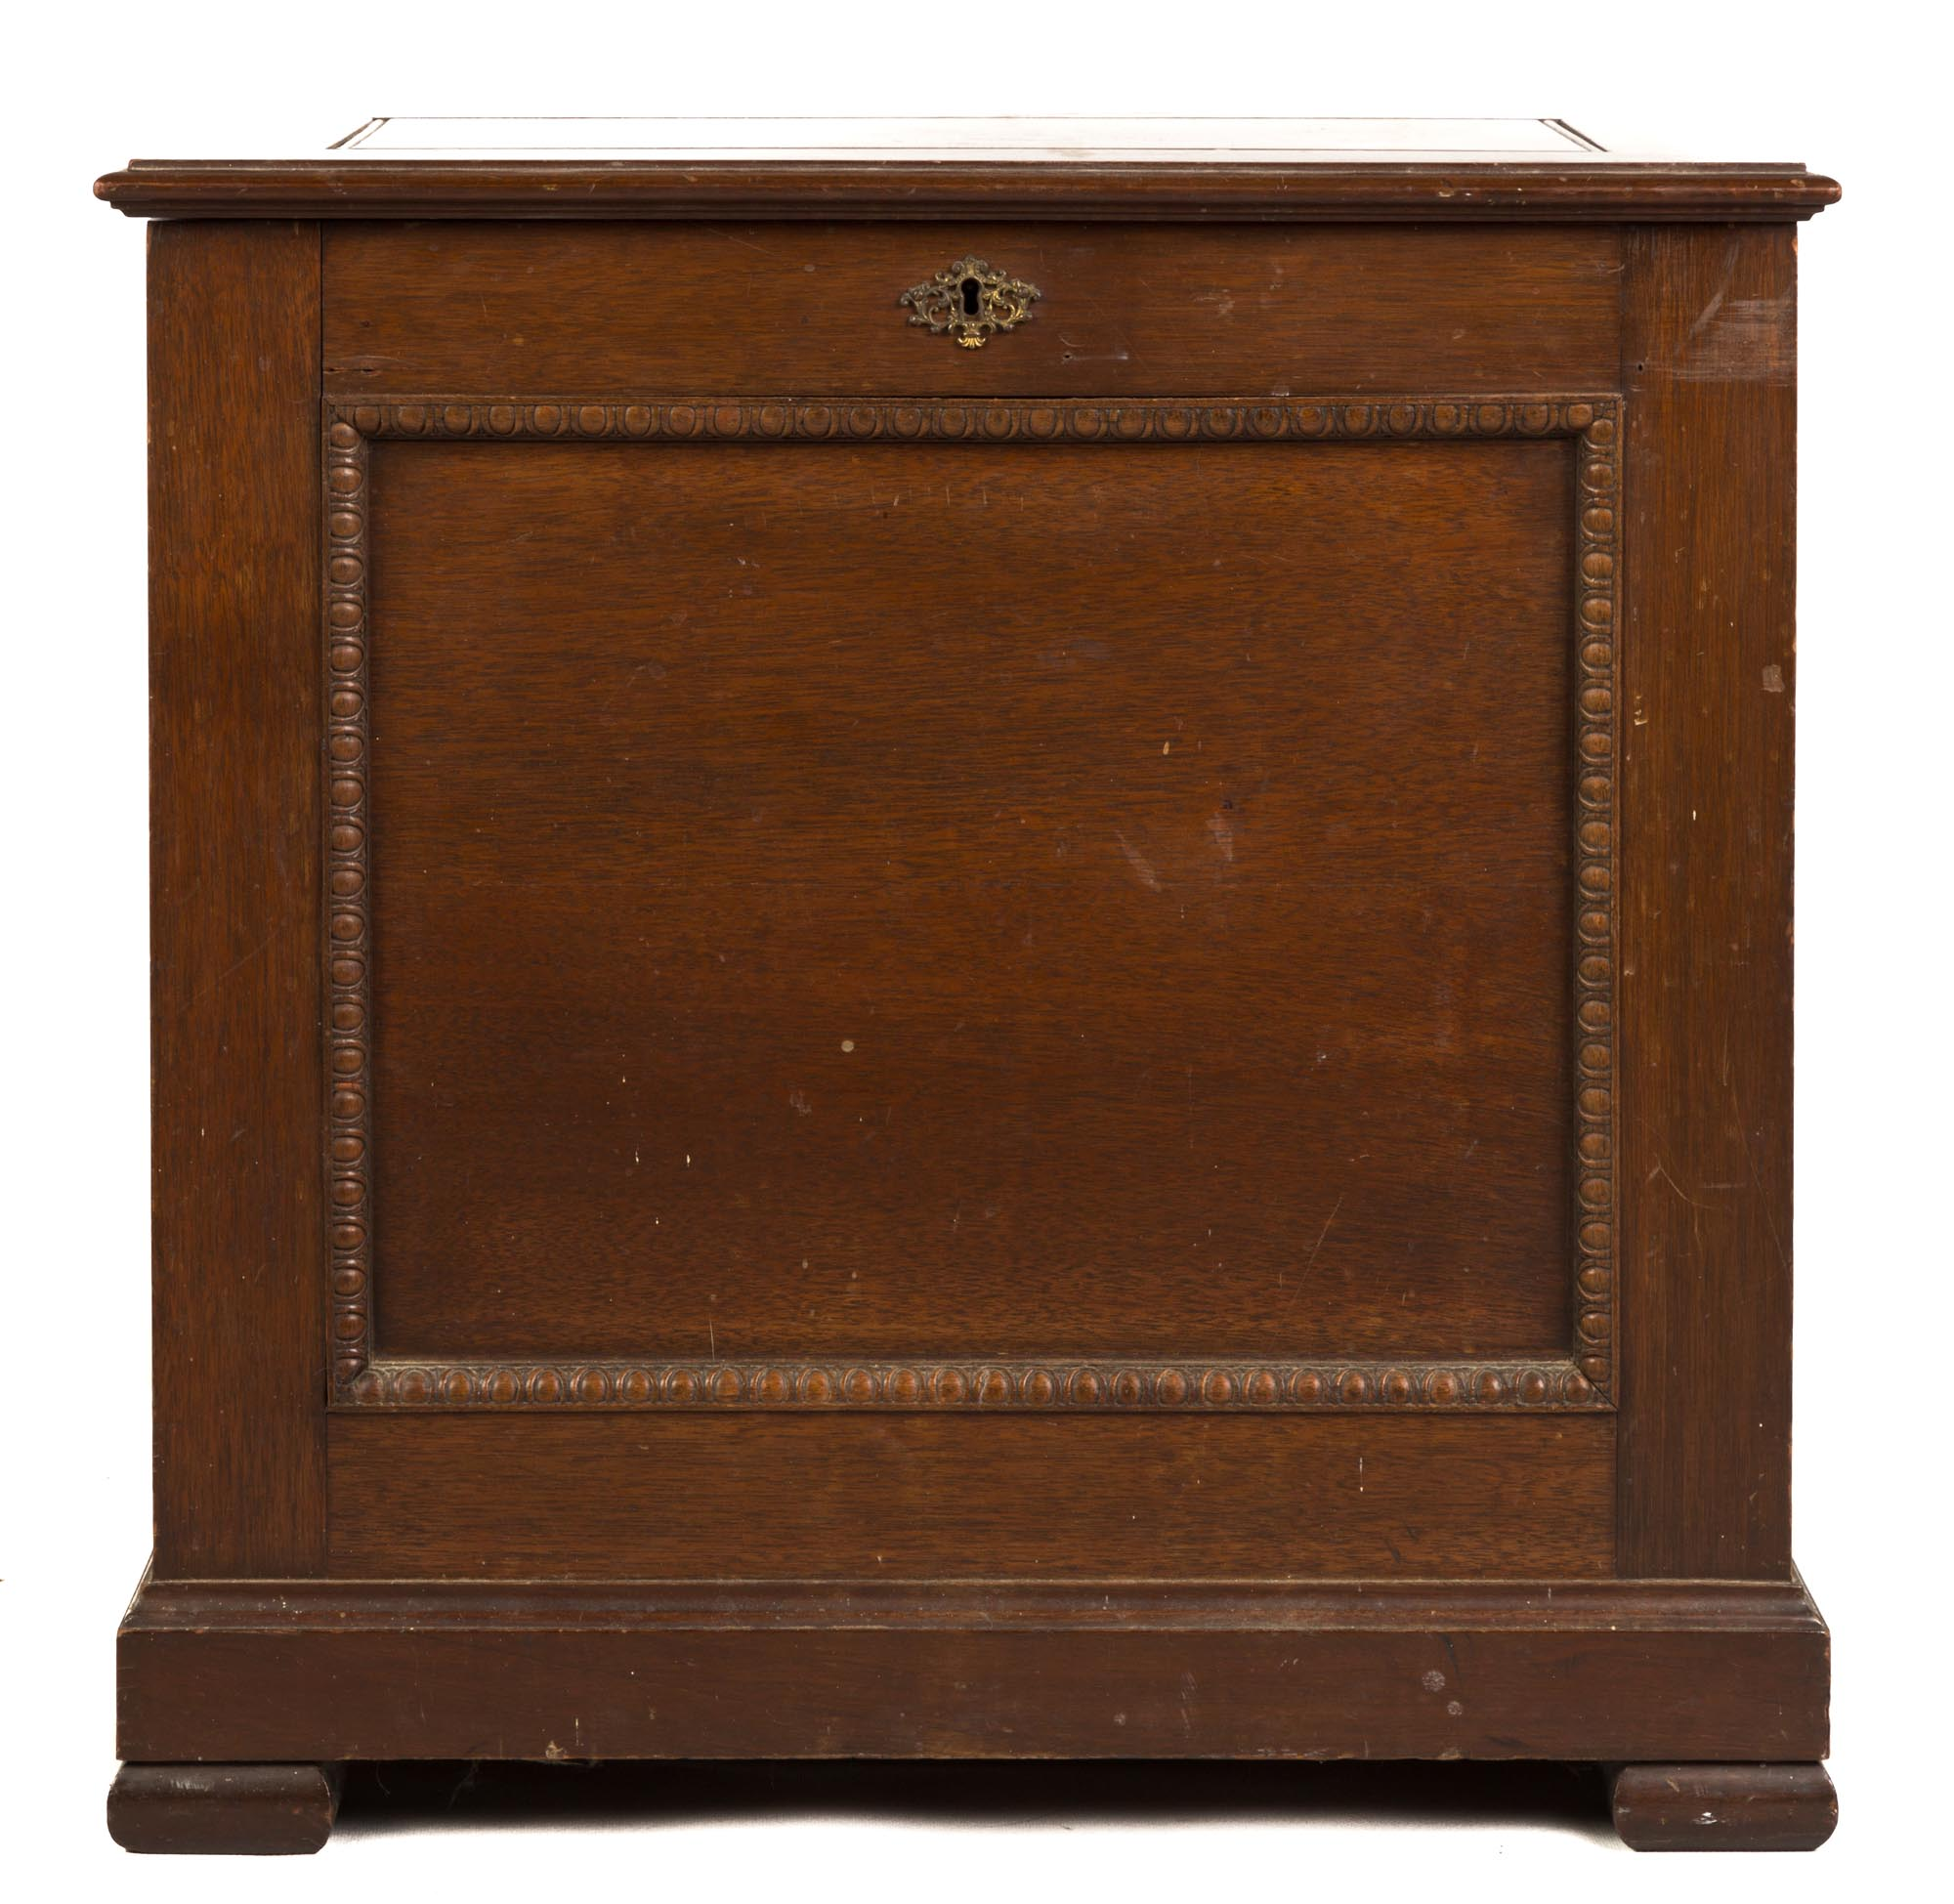 Lot 215 - Upright Criterion Double Comb Music Box. 19th century. Carved mahogany case. Additional box of (